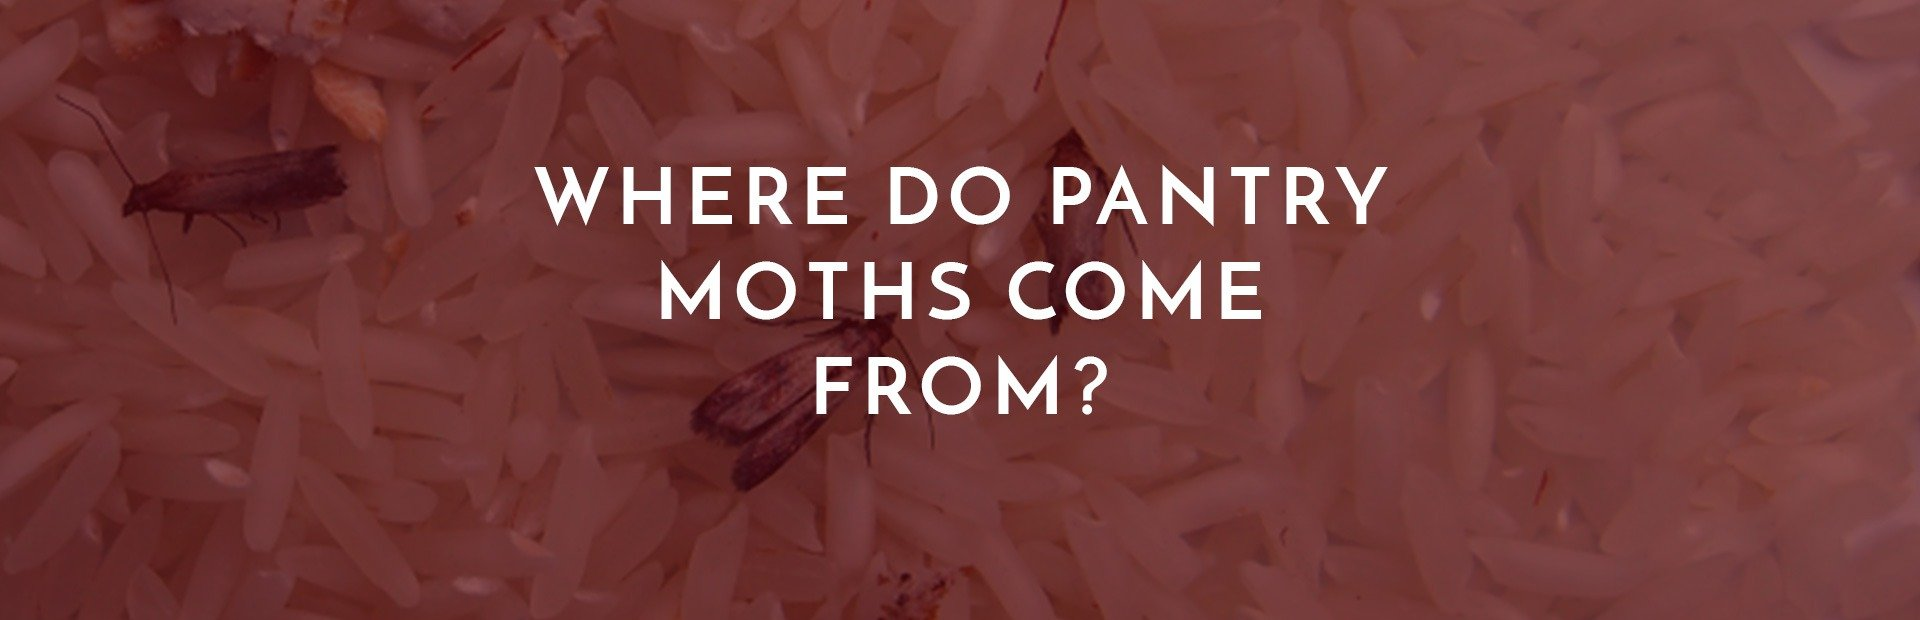 Where Do Pantry Moths Come From?